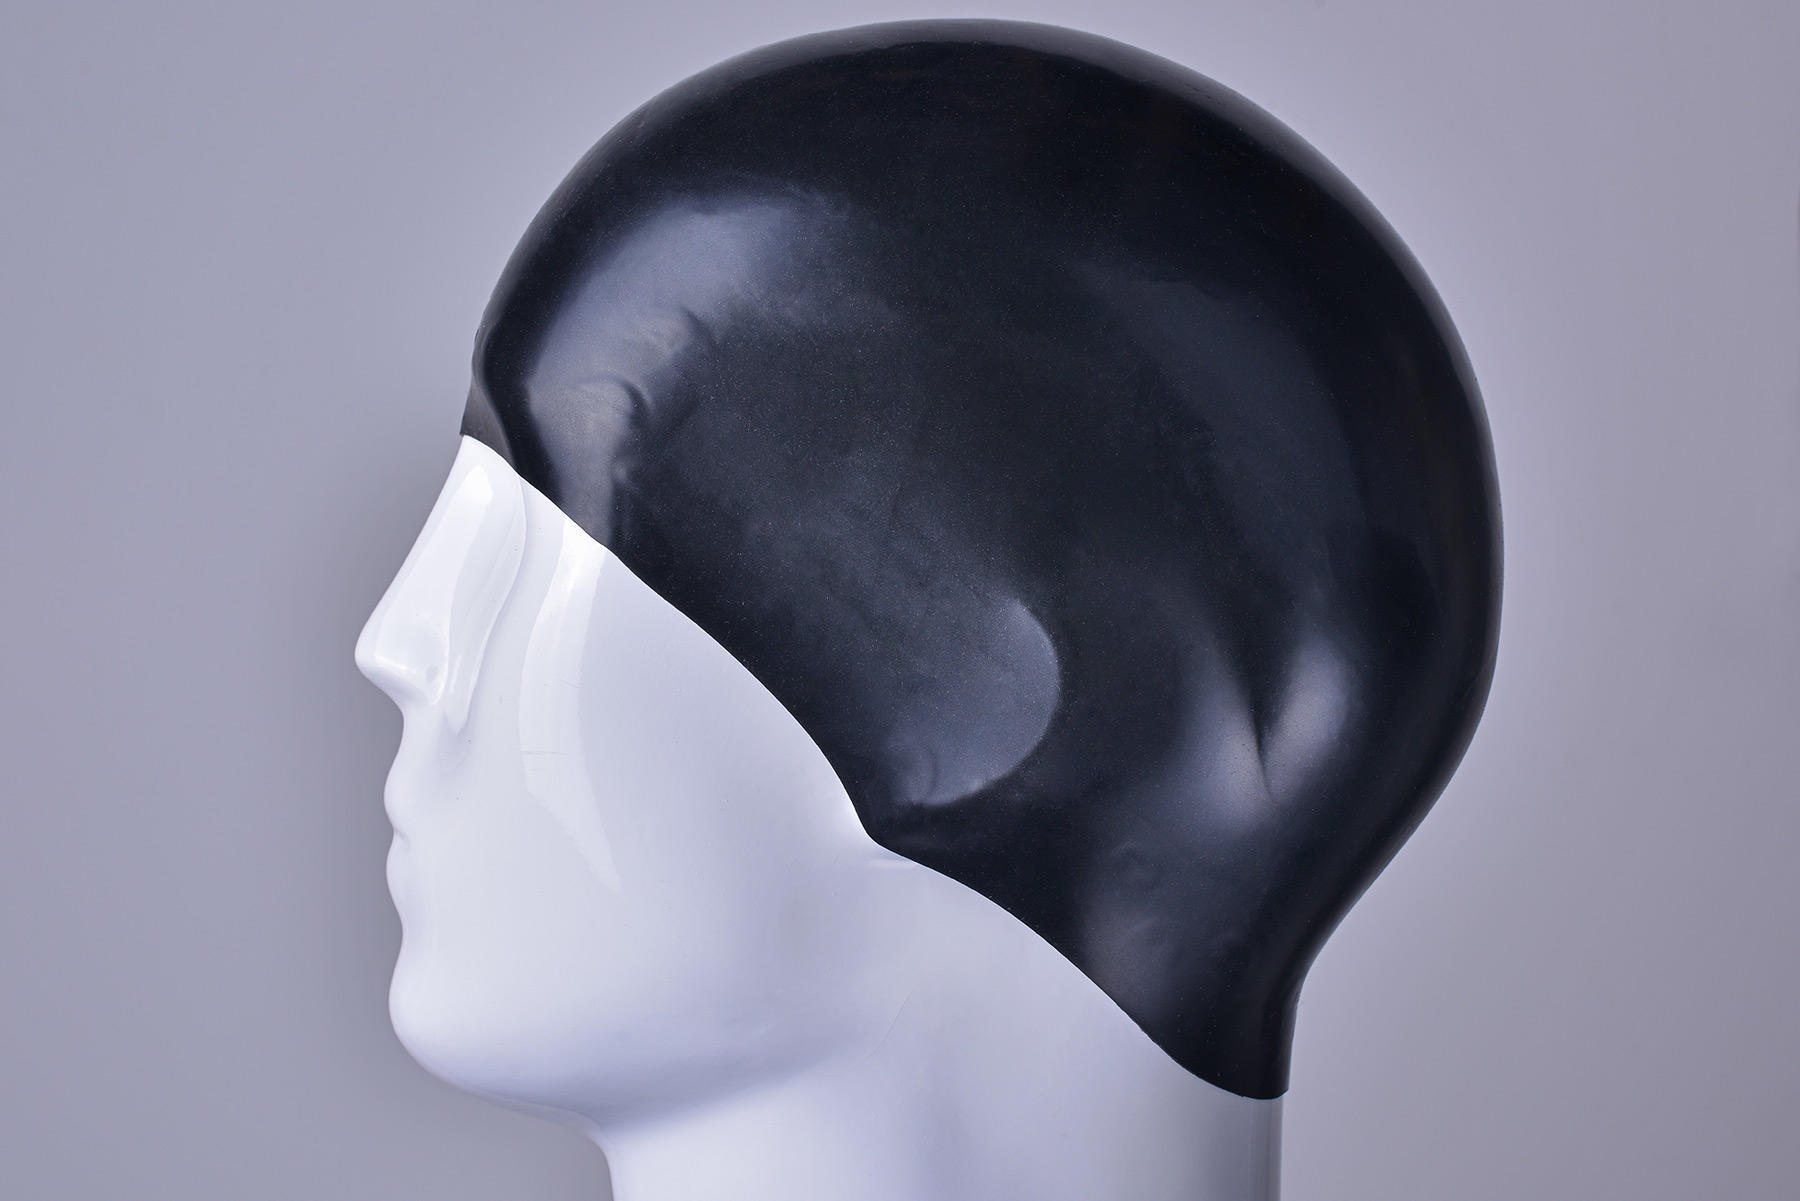 3D Dome Racing Swimming Cap in black